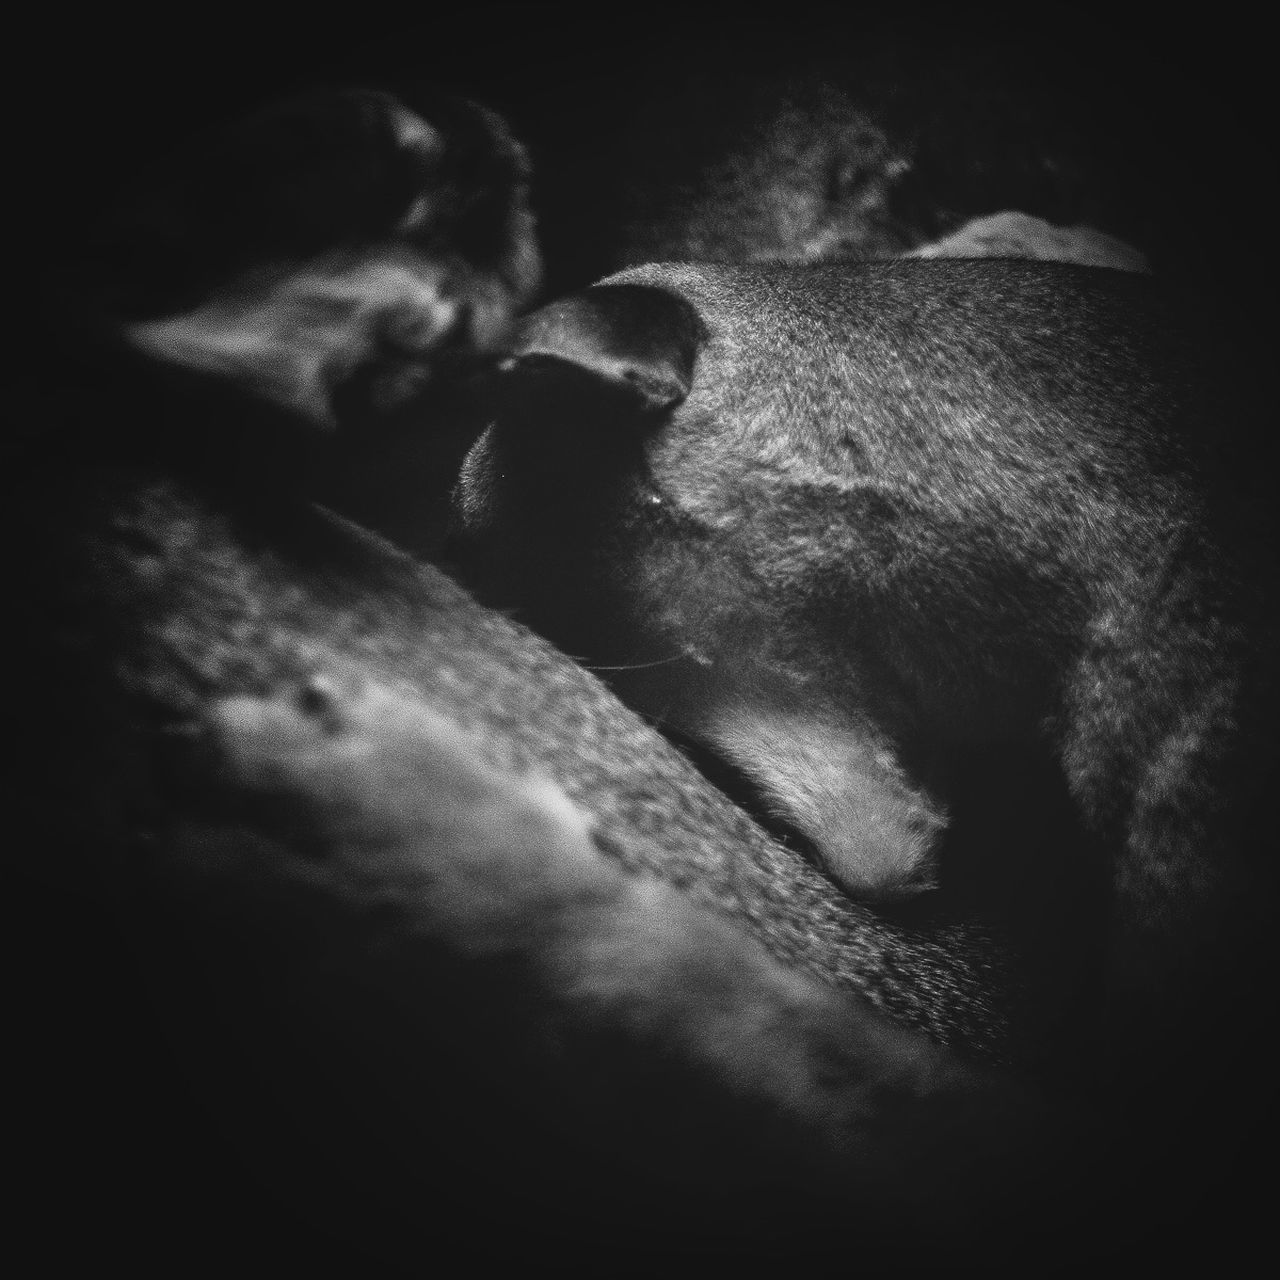 mammal, animal themes, one animal, domestic animals, no people, pets, dog, sleeping, relaxation, indoors, animals in the wild, night, close-up